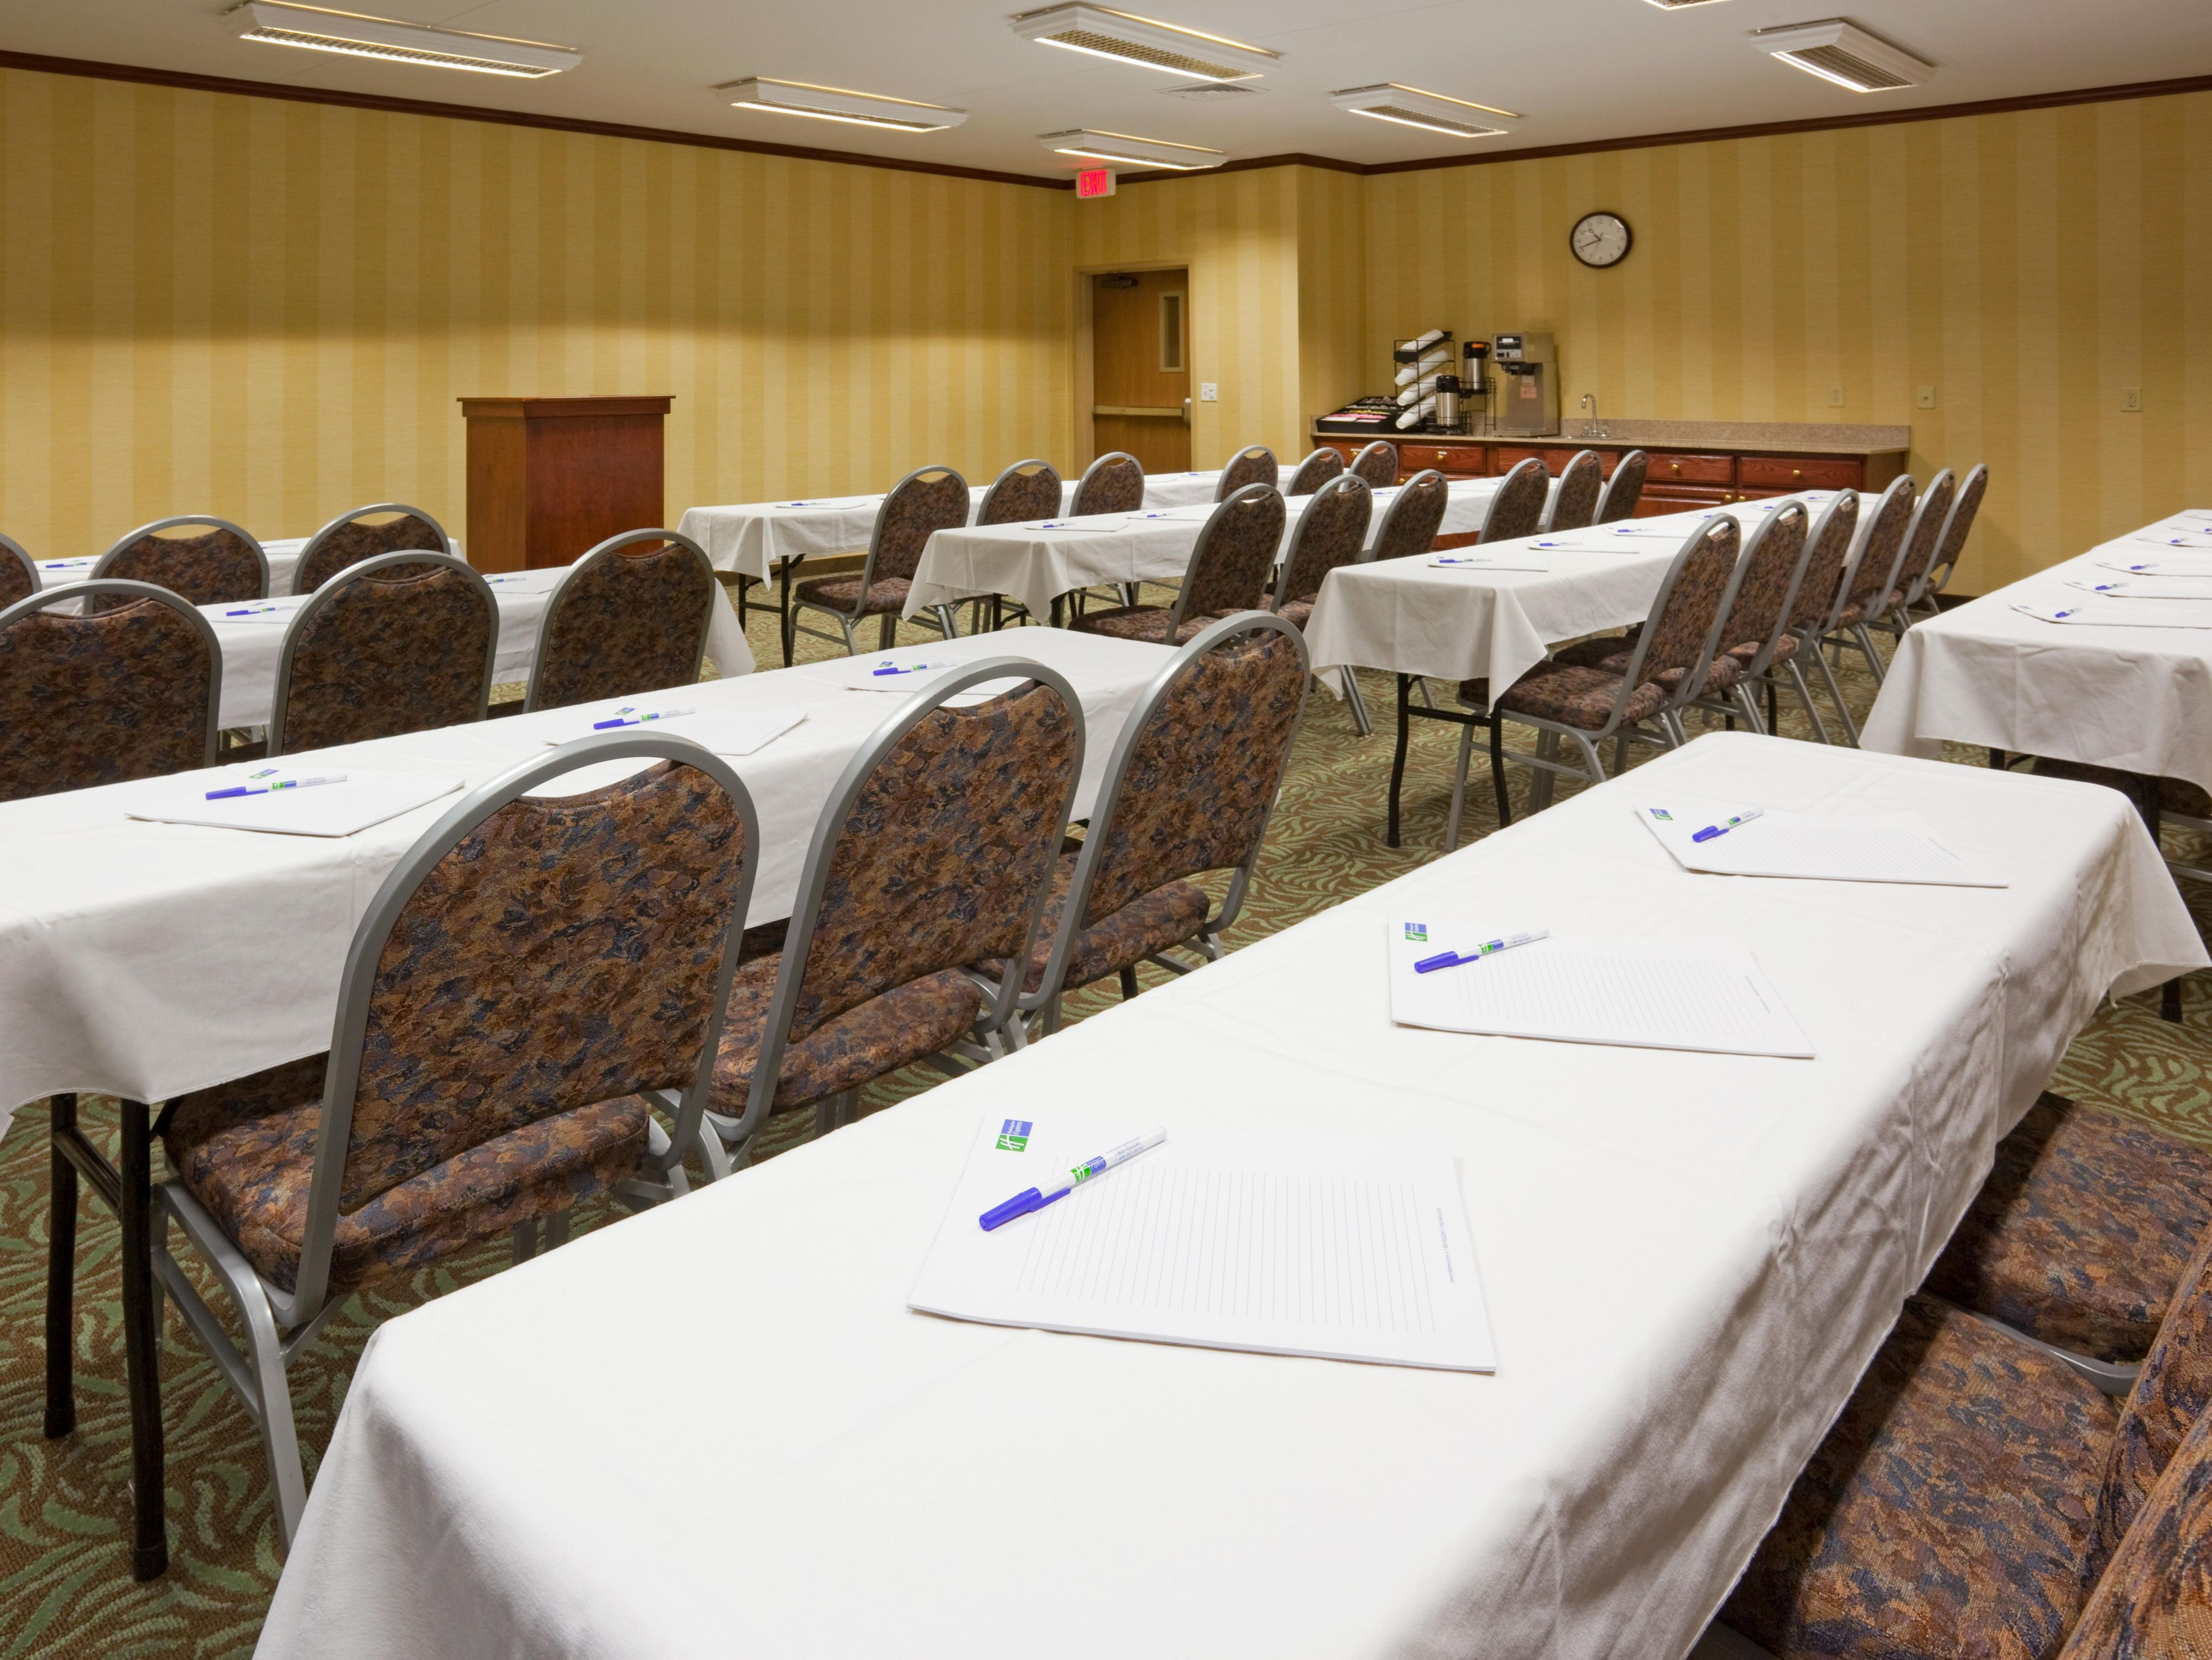 Barnes Meeting Room in Sioux Falls Hotel